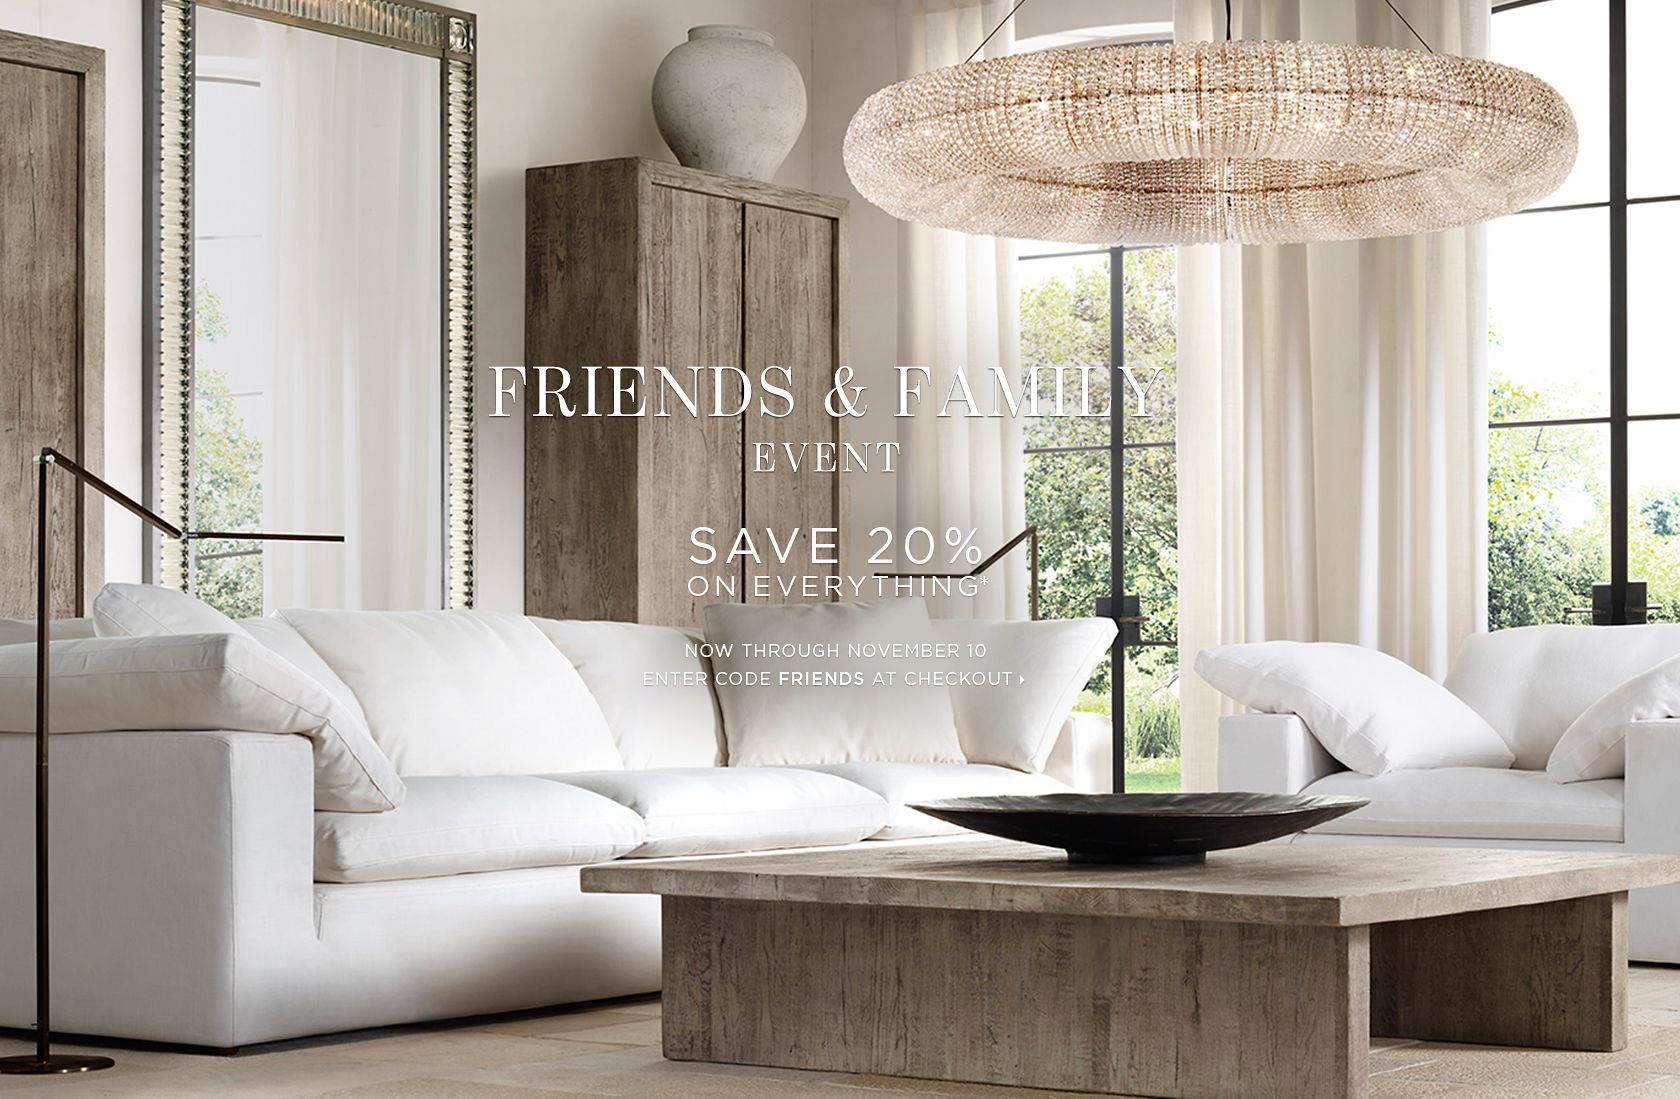 Friends & Family. Save 20% on Everything.